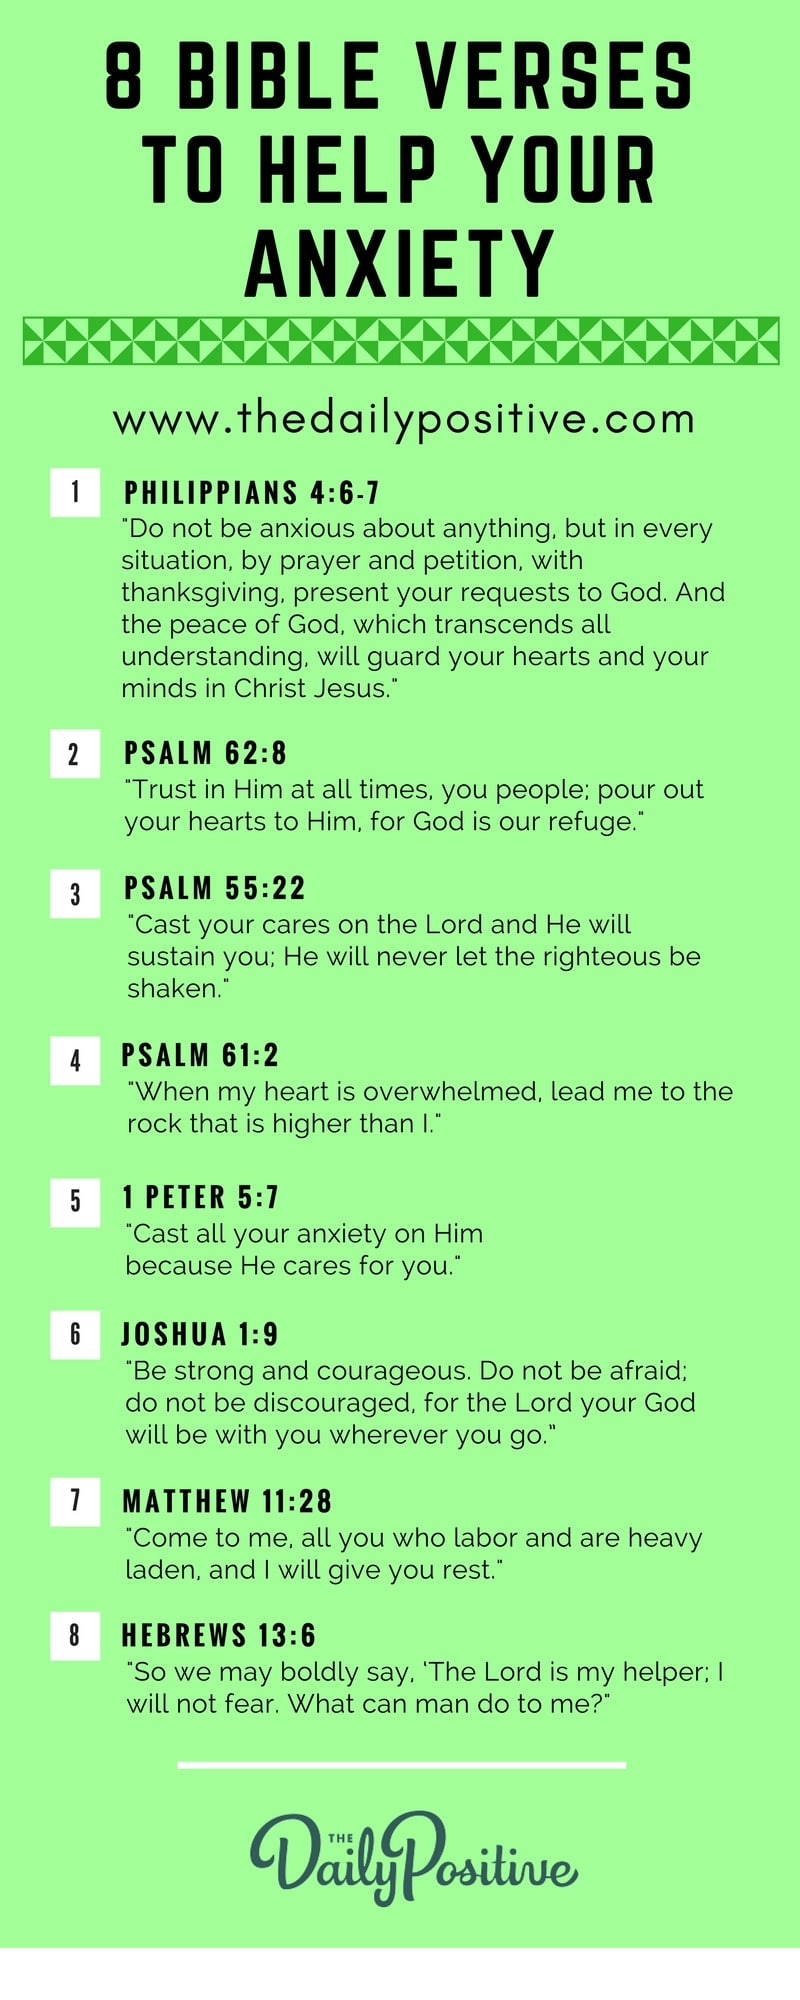 Fulgurant Bible Verses To Help Your Anxiety Daily Positive Bible Verses Images About Hope Bible Verses Images English Hd inspiration Bible Verses Images